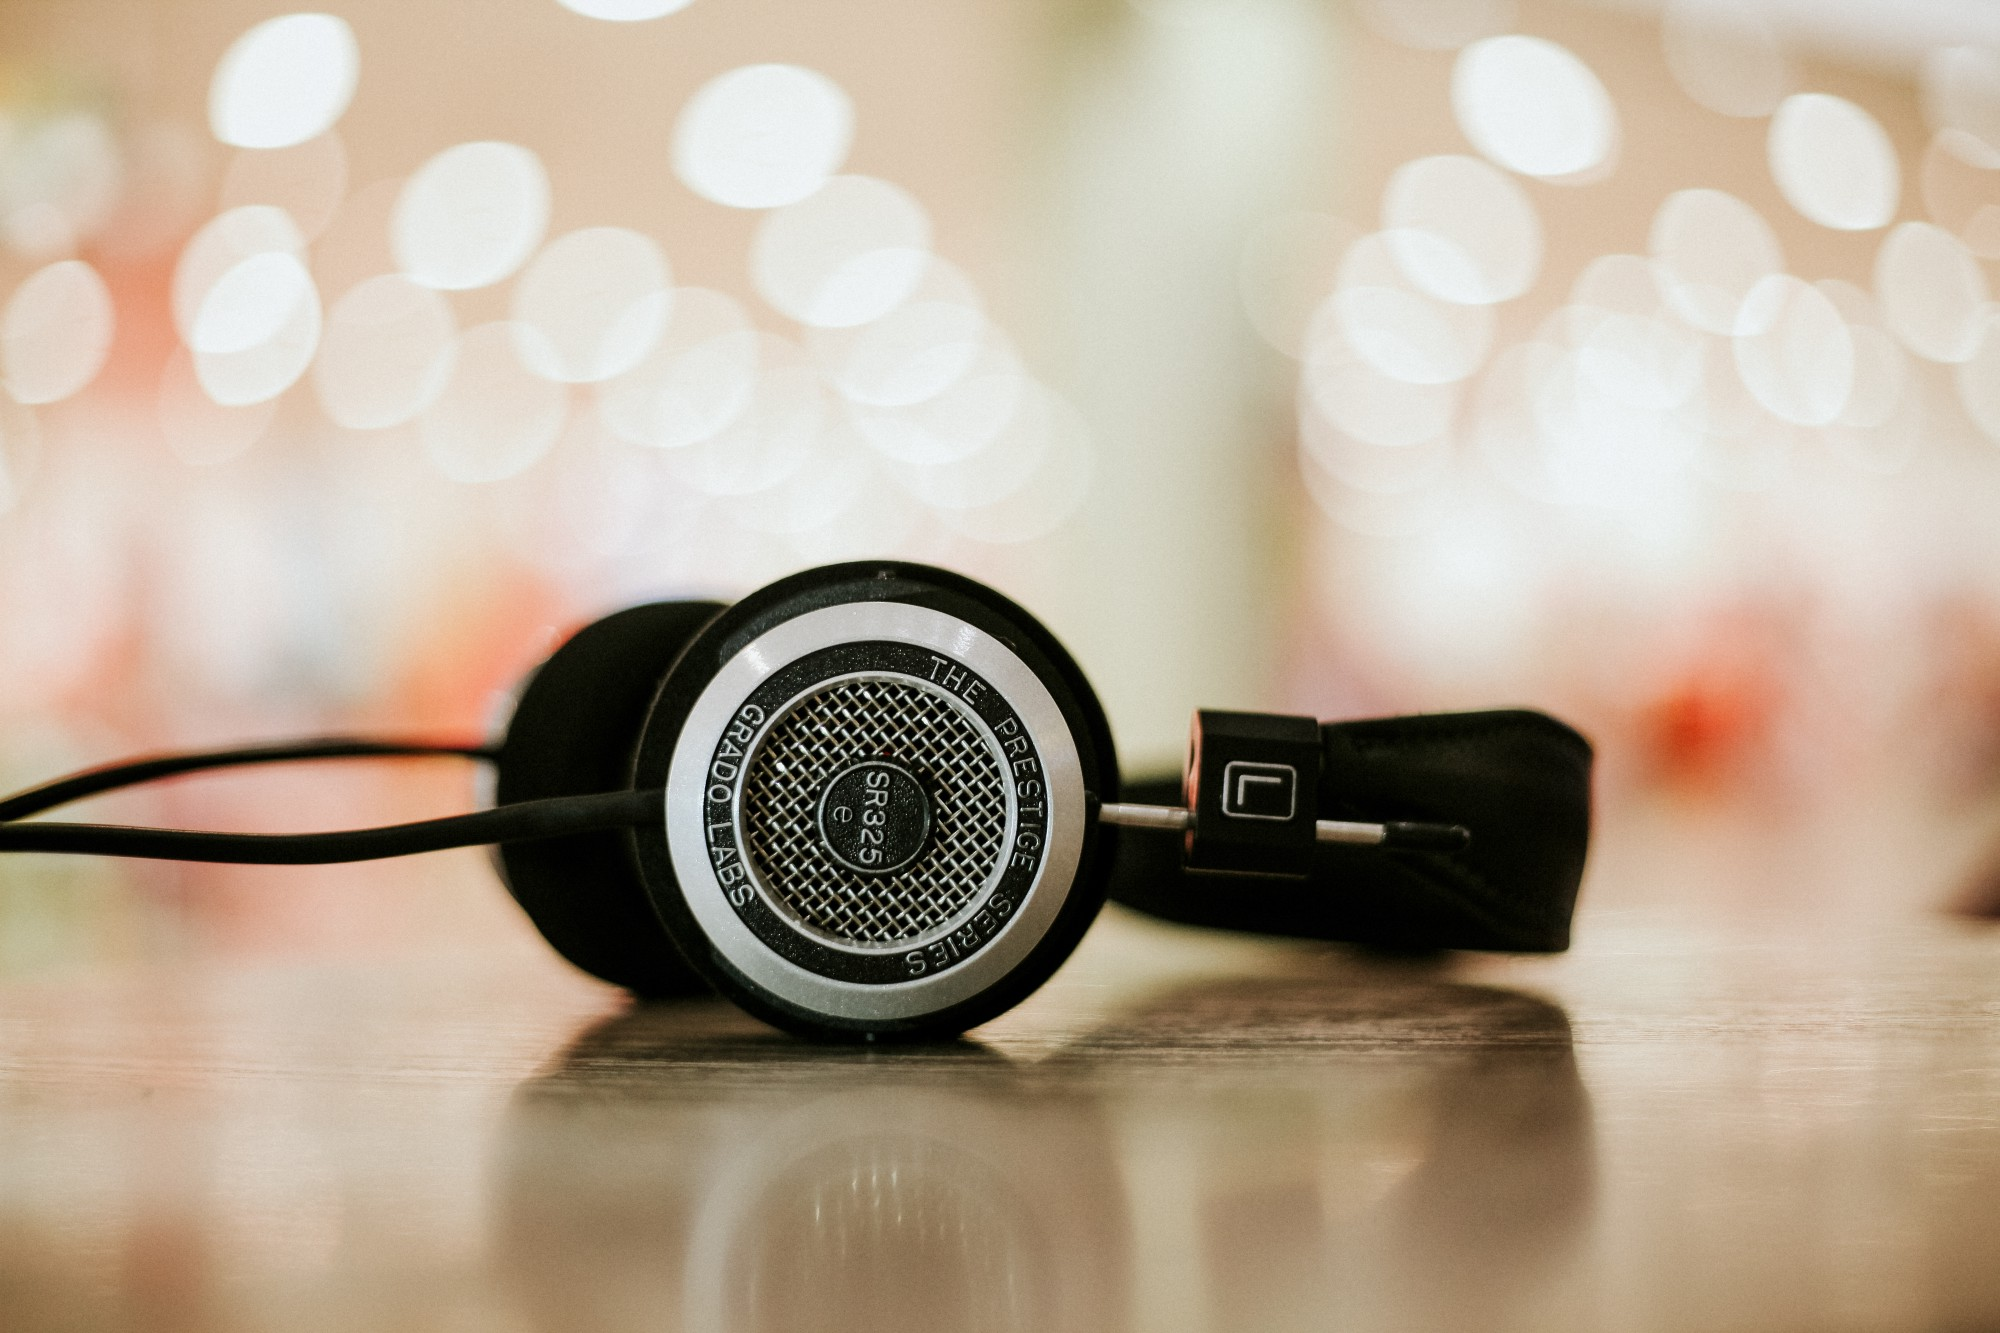 God still speaks to us today. Here is how we can listen for God's voice in our lives.